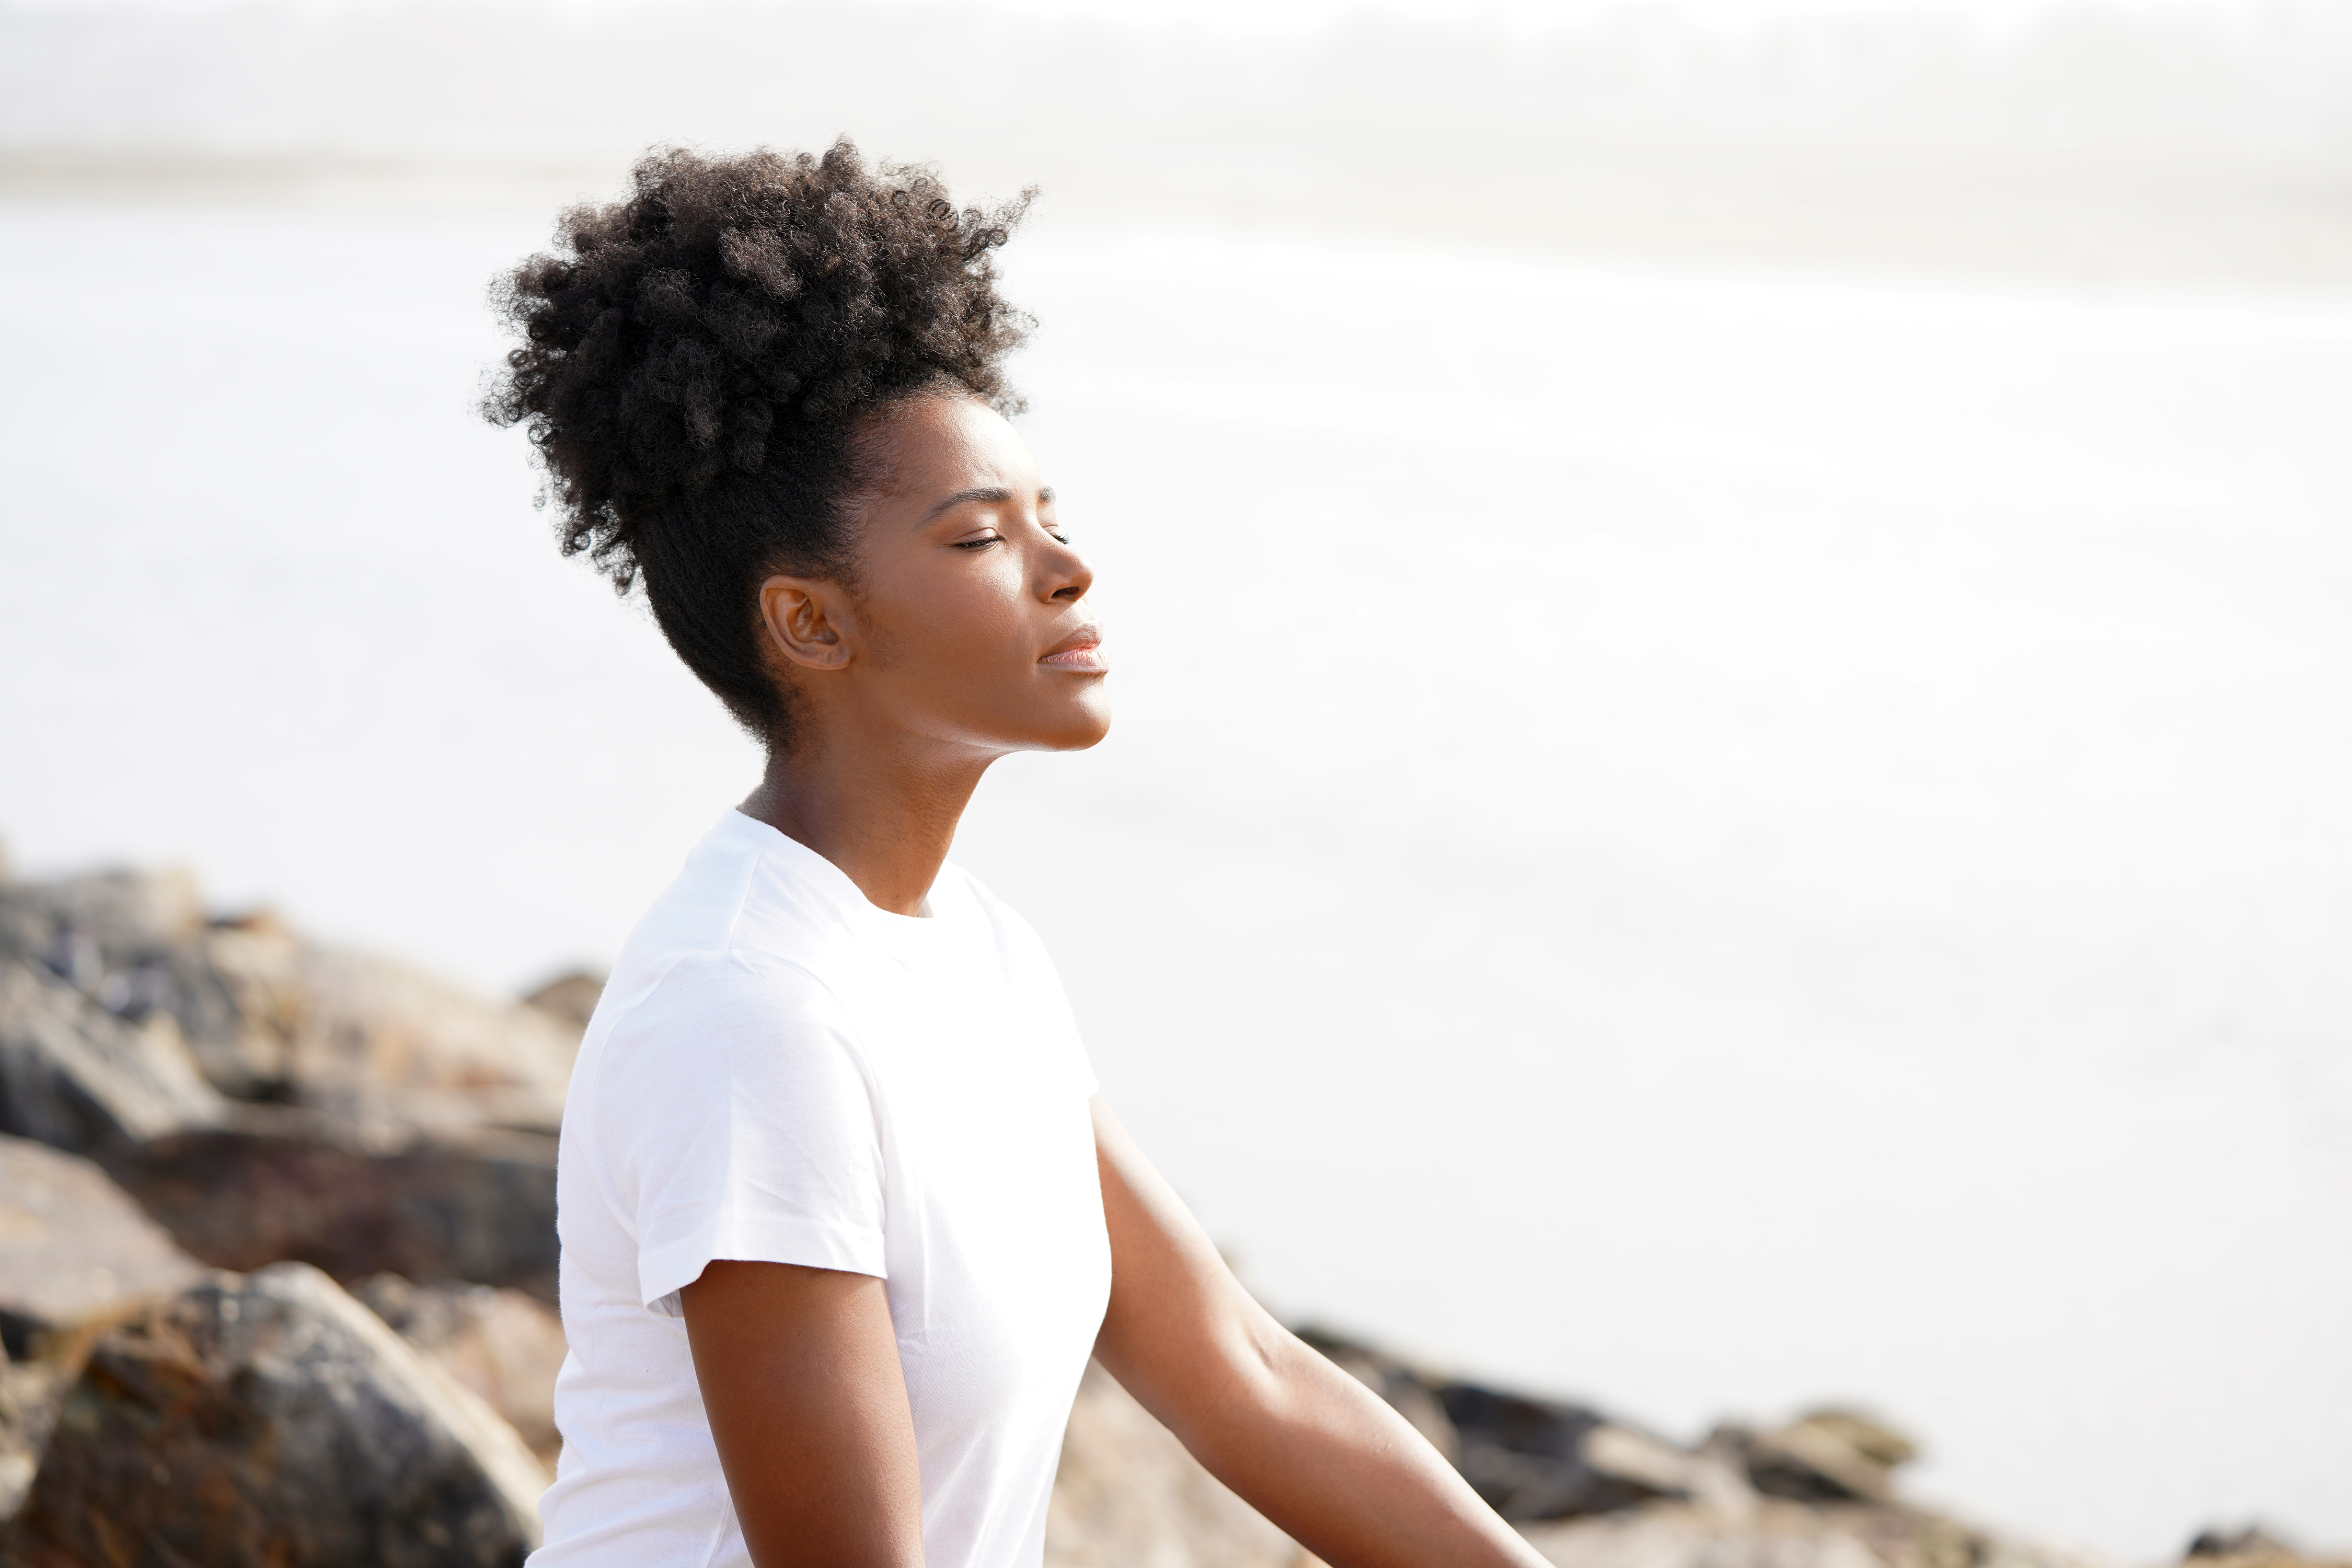 Mindfulness matters: 5 ways to get started with mindfulness